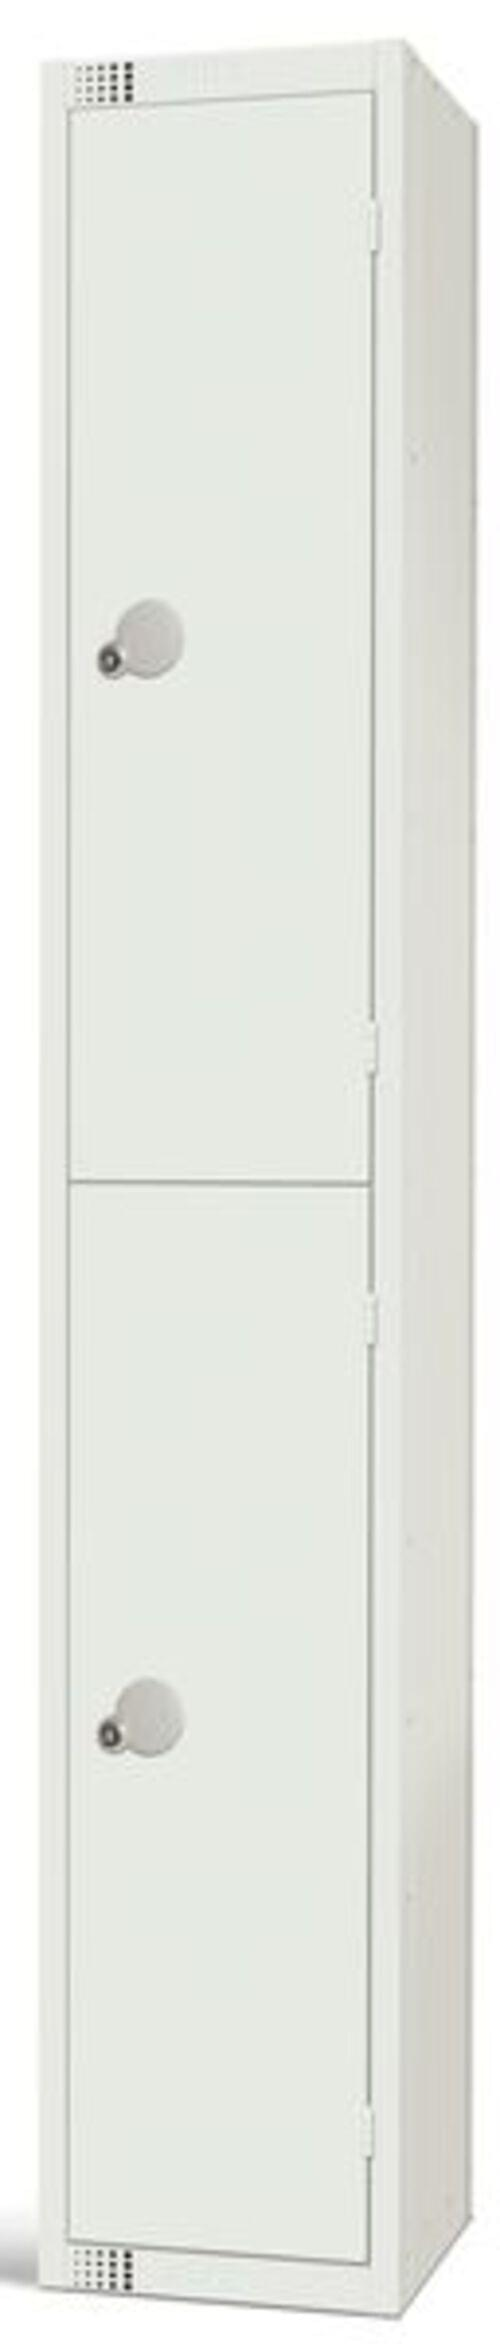 2 CompartmentLocker - White - 1800 x 300 x 300mm